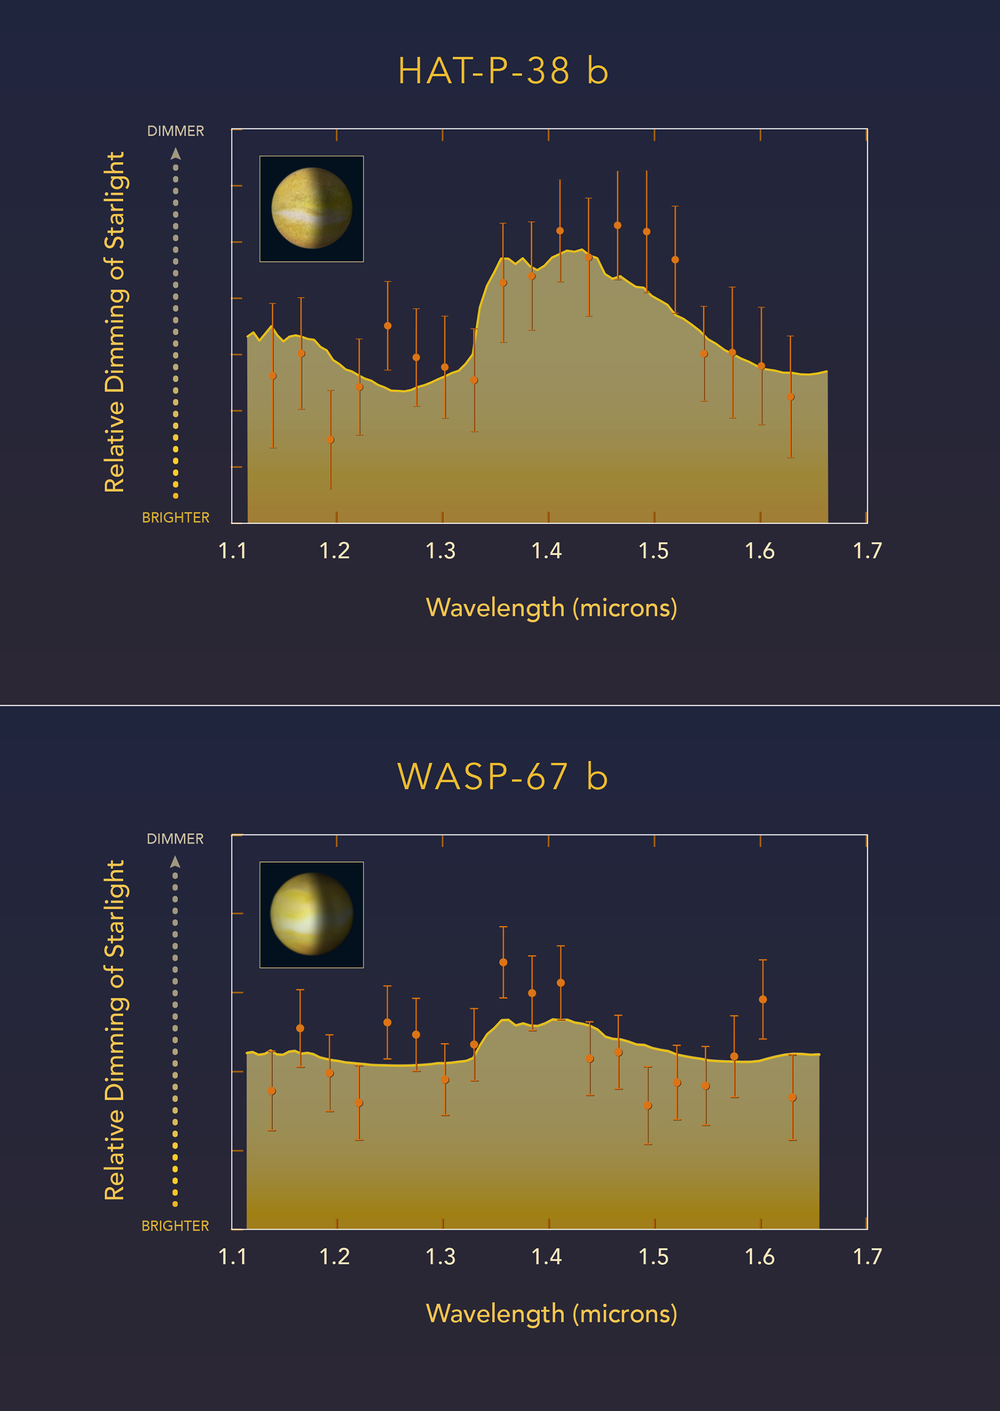 "This diagram compares Hubble Space Telescope observations of two ""hot Jupiter""-class planets orbiting very closely to different sunlike stars. Astronomers measured how light from each parent star is filtered through each planet's atmosphere. HAT-P-38 b did have a water signature indicated by the absorption-feature peak in the spectrum. This is interpreted as indicating the upper atmosphere is free of clouds or hazes. WASP-67 b, has a flat spectrum that lacks any water-absorption feature, suggesting most of the planet's atmosphere is masked by high-altitude clouds. - Credits: Artwork: NASA, ESA, and Z. Levy (STScI); Credit: Science: NASA, ESA, and G. Bruno (STScI) - Click to enlarge"